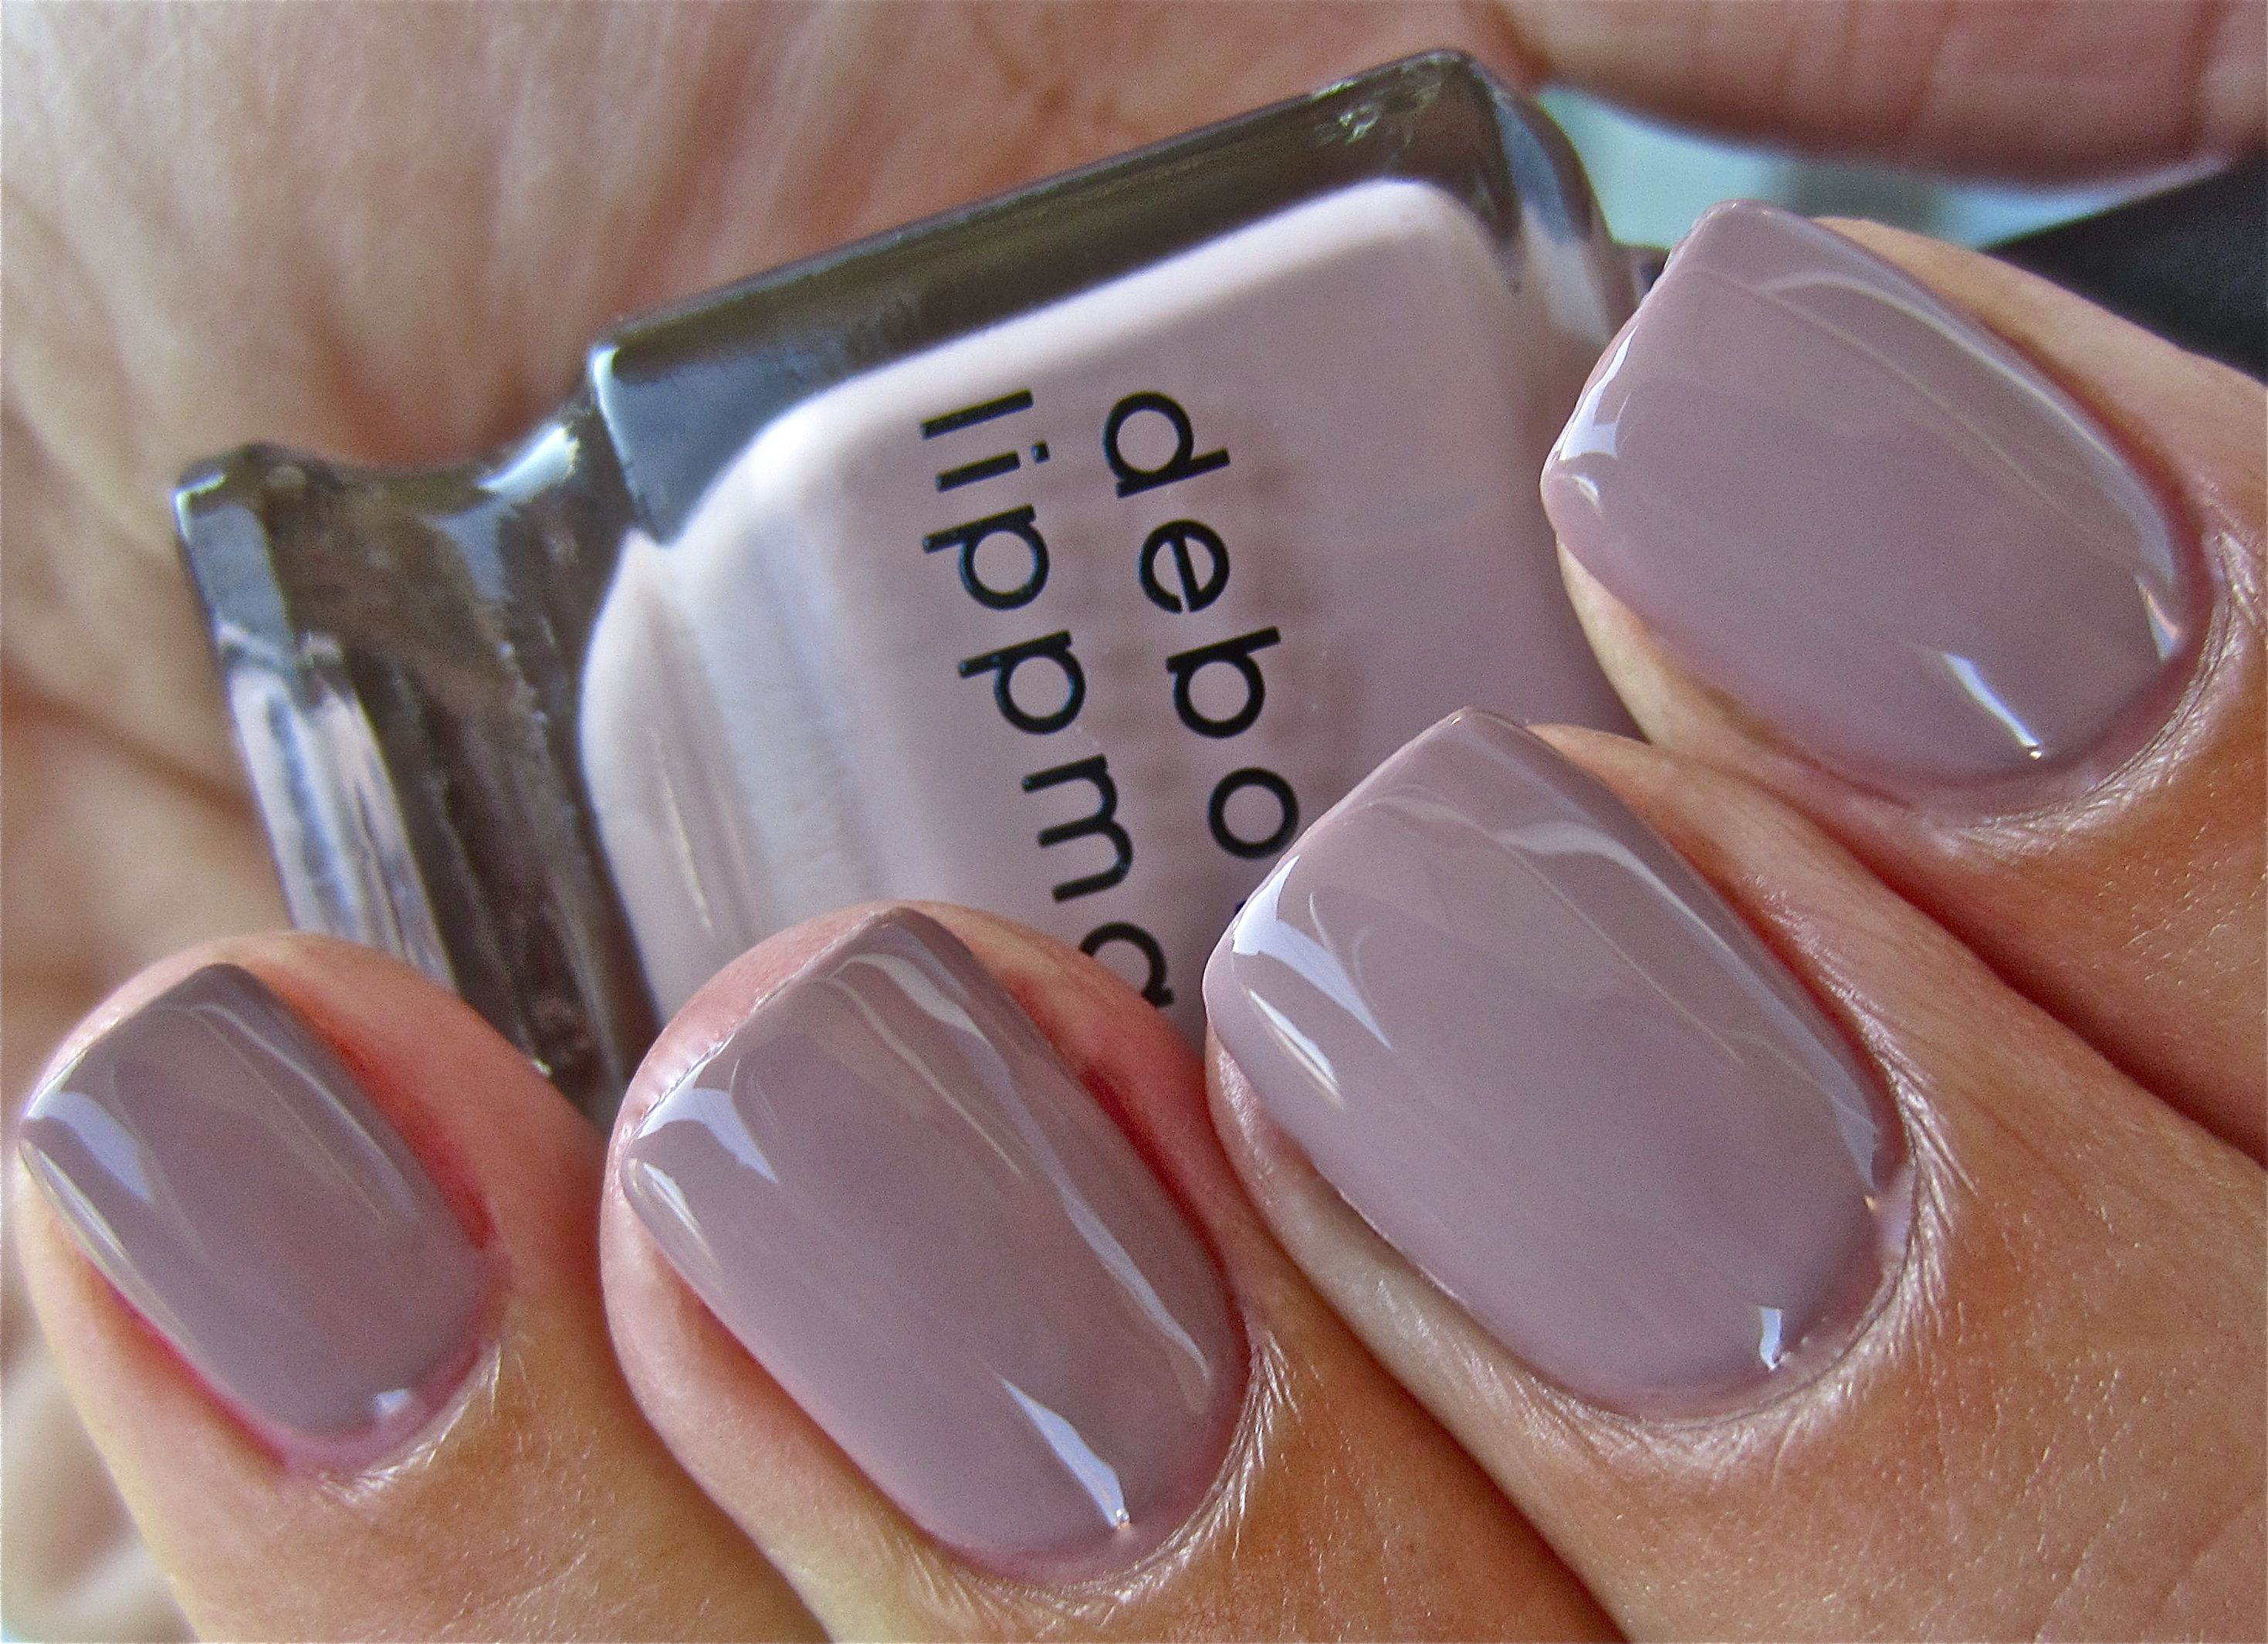 Modern Love - Deborah Lippmann | Nailed it | Pinterest | Deborah ...